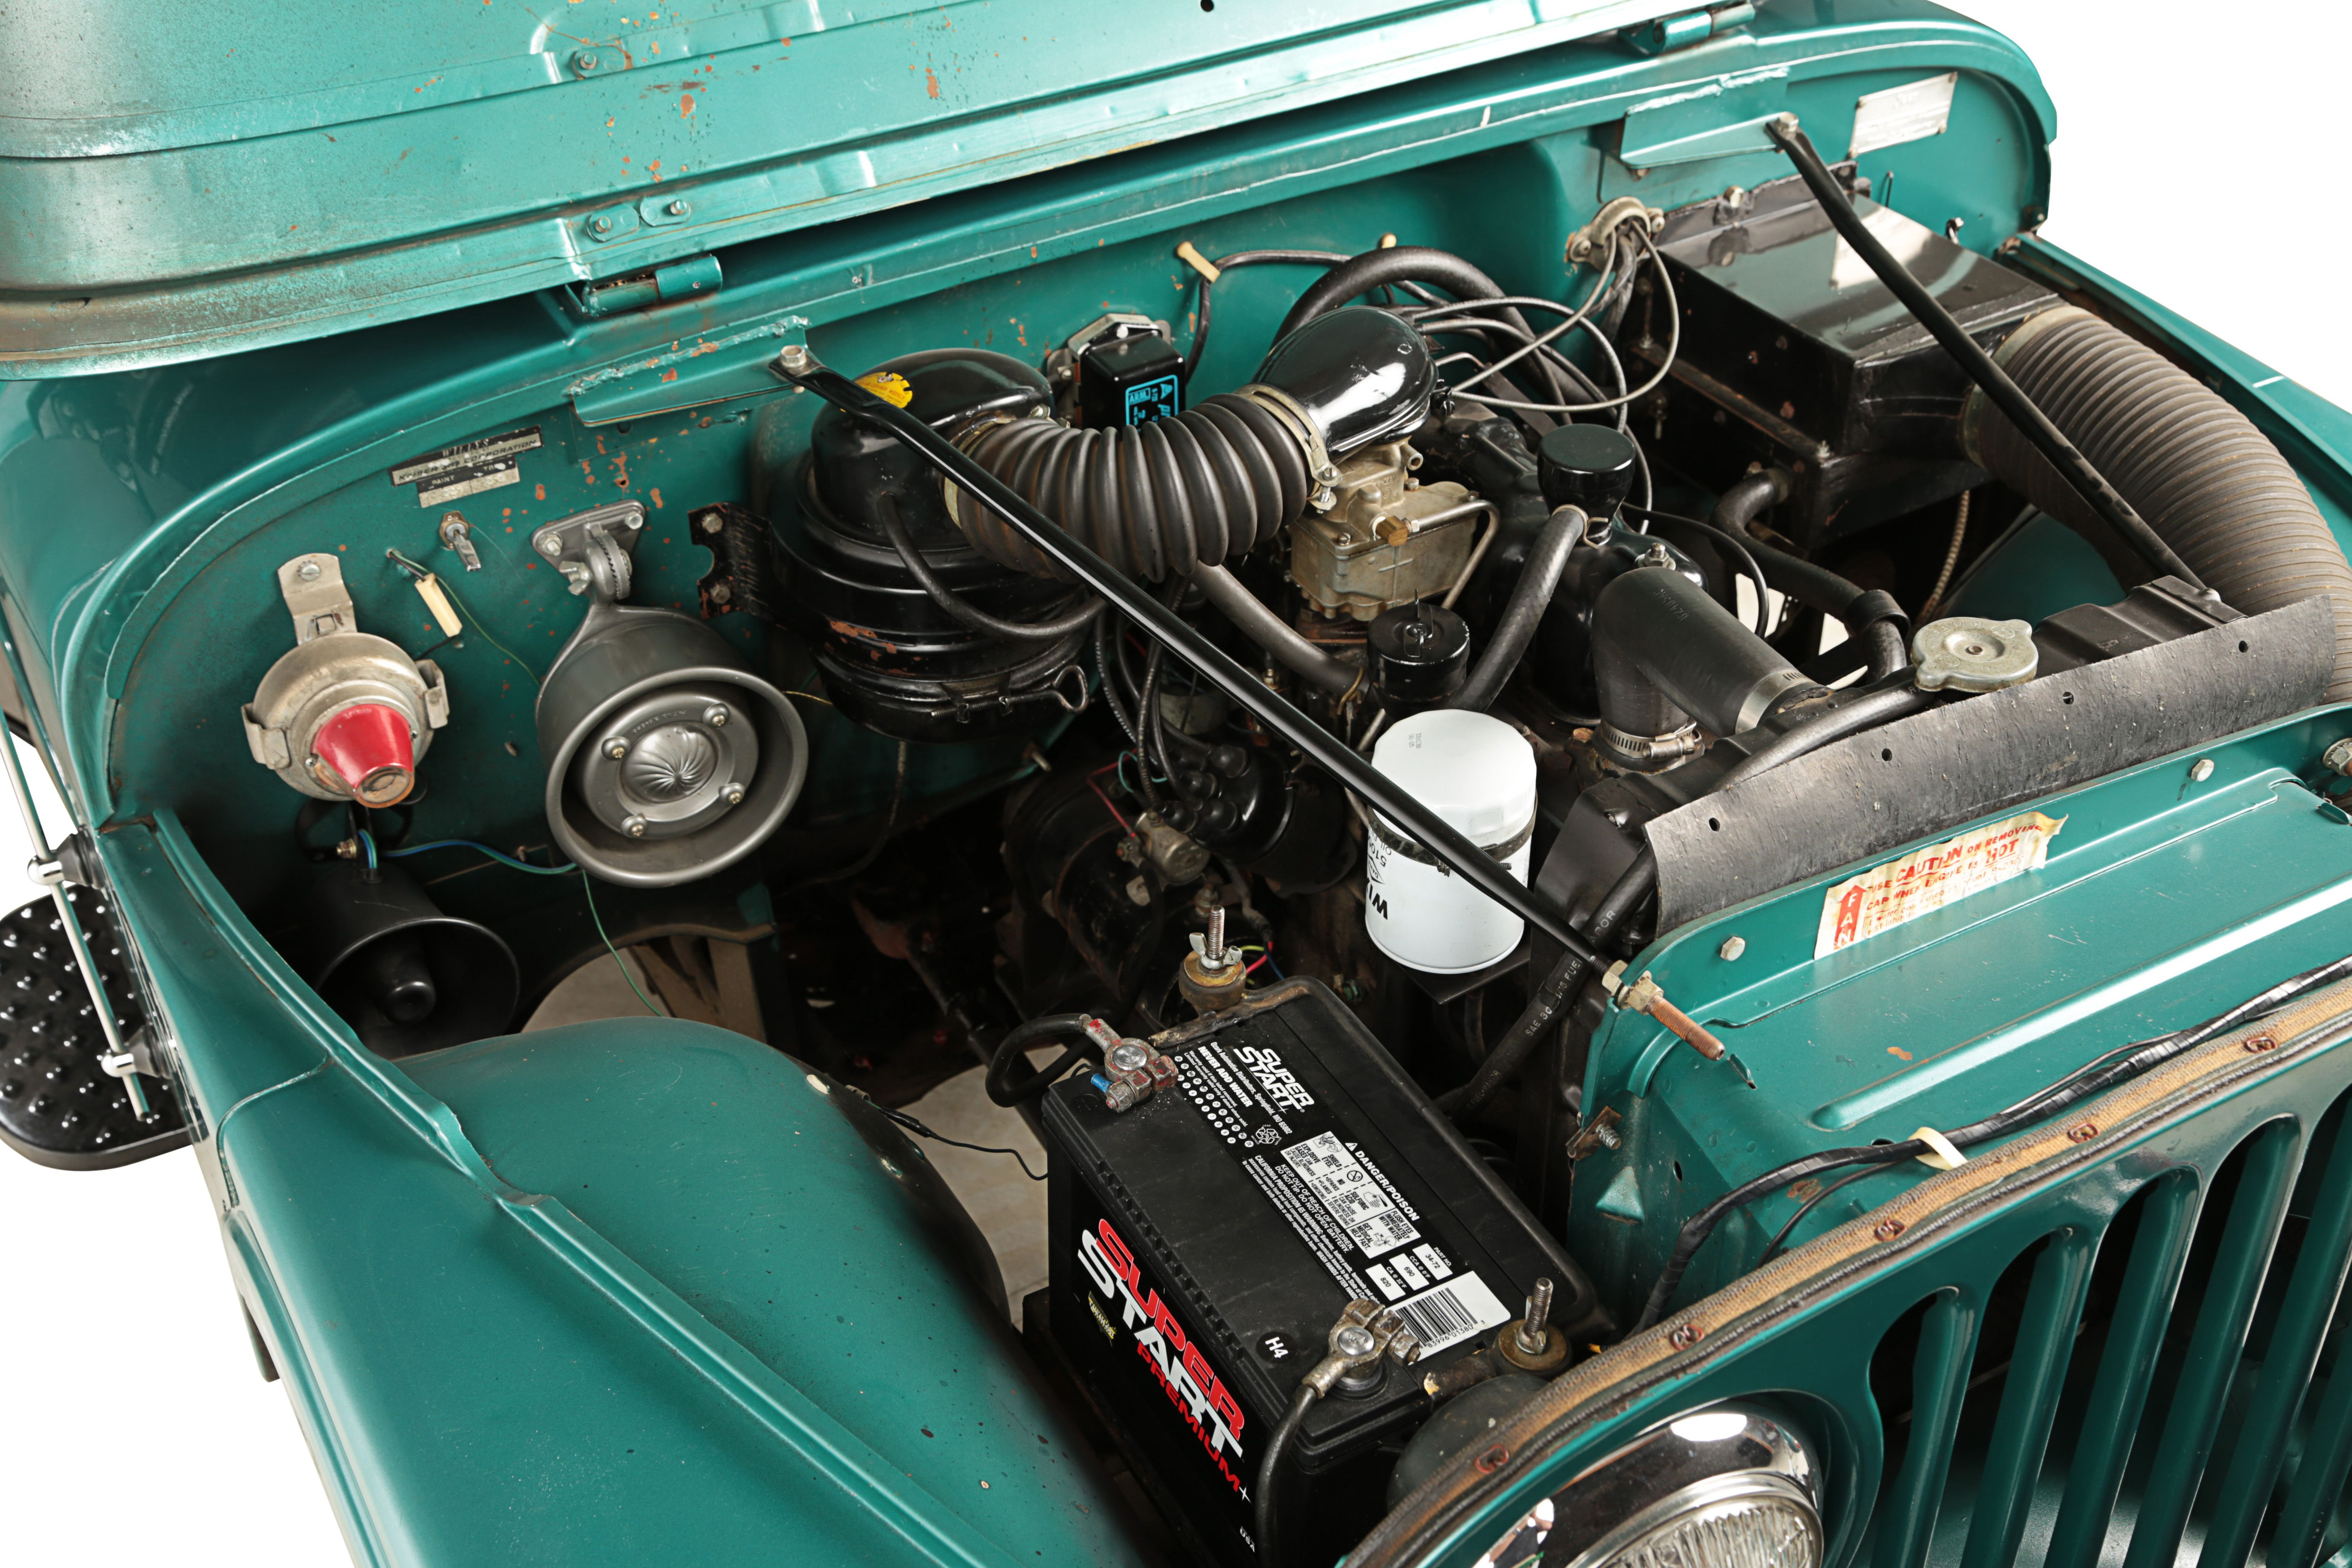 1967 Jeep Cj6 Engine Jeep Cj6 Willys Jeep Jeep Cj5